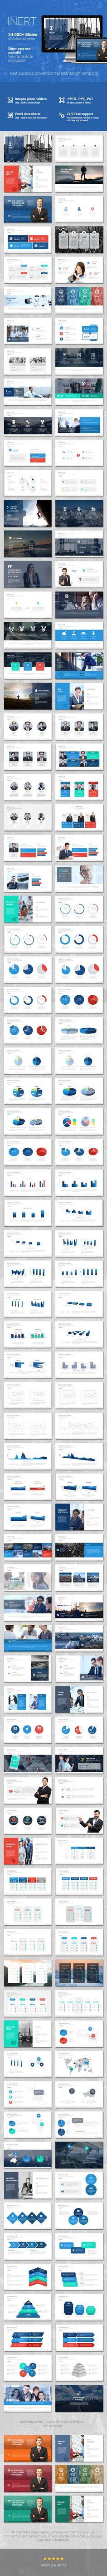 Sales powerpoint presentation business powerpoint templates inert powerpoint presentation template alramifo Images